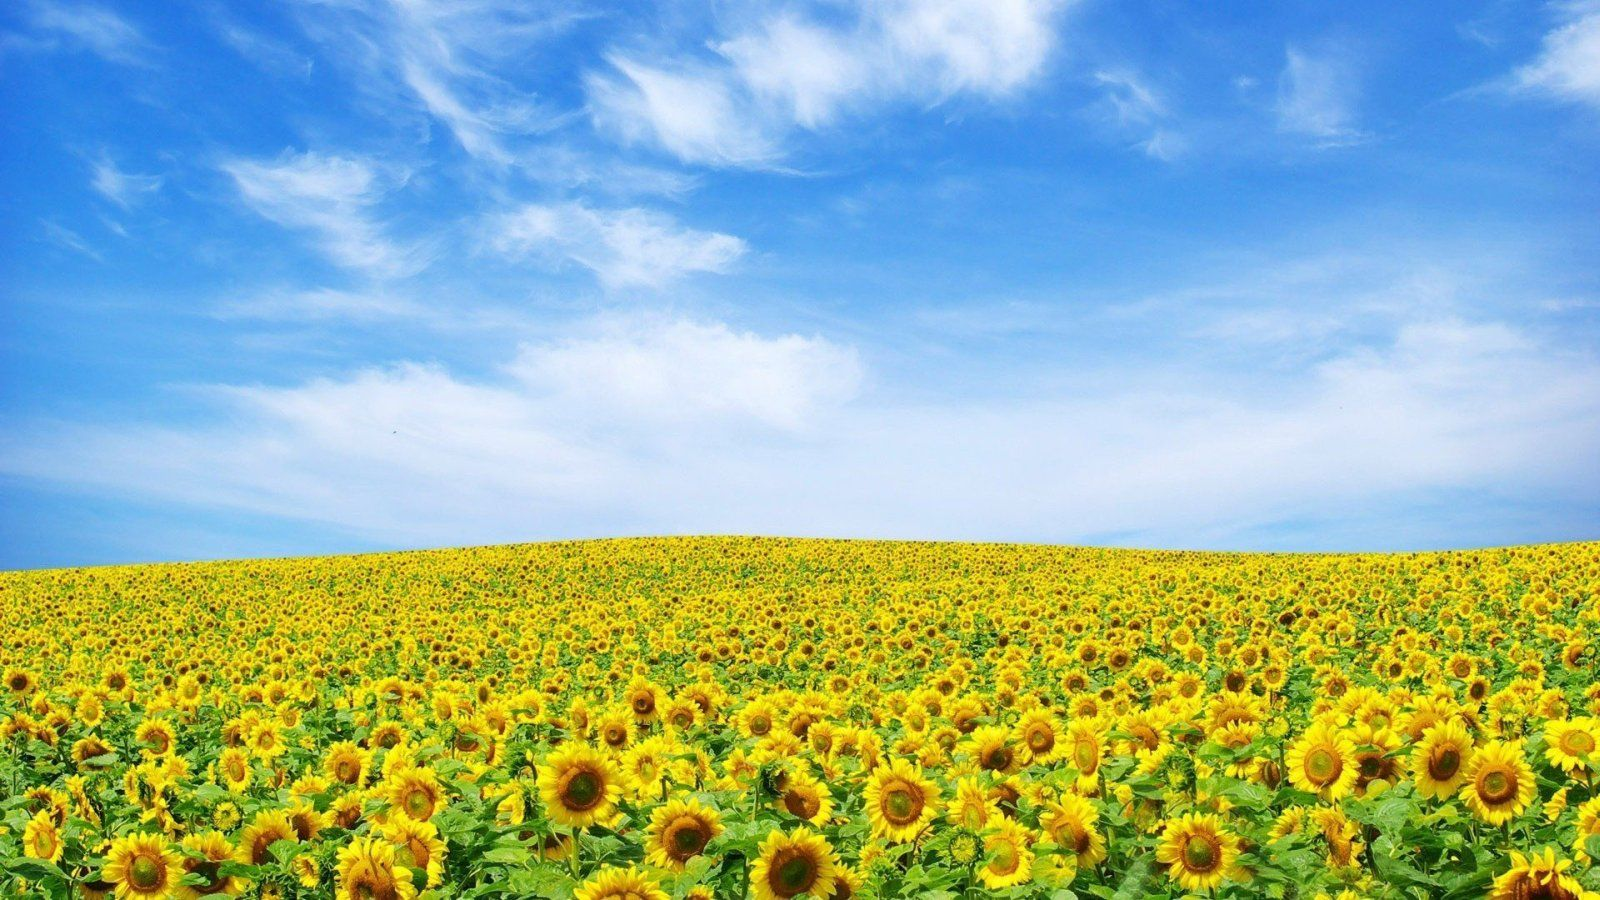 Hd wallpaper yellow flowers - Awesome Yellow Flower Wallpaper Full Hd Pictures